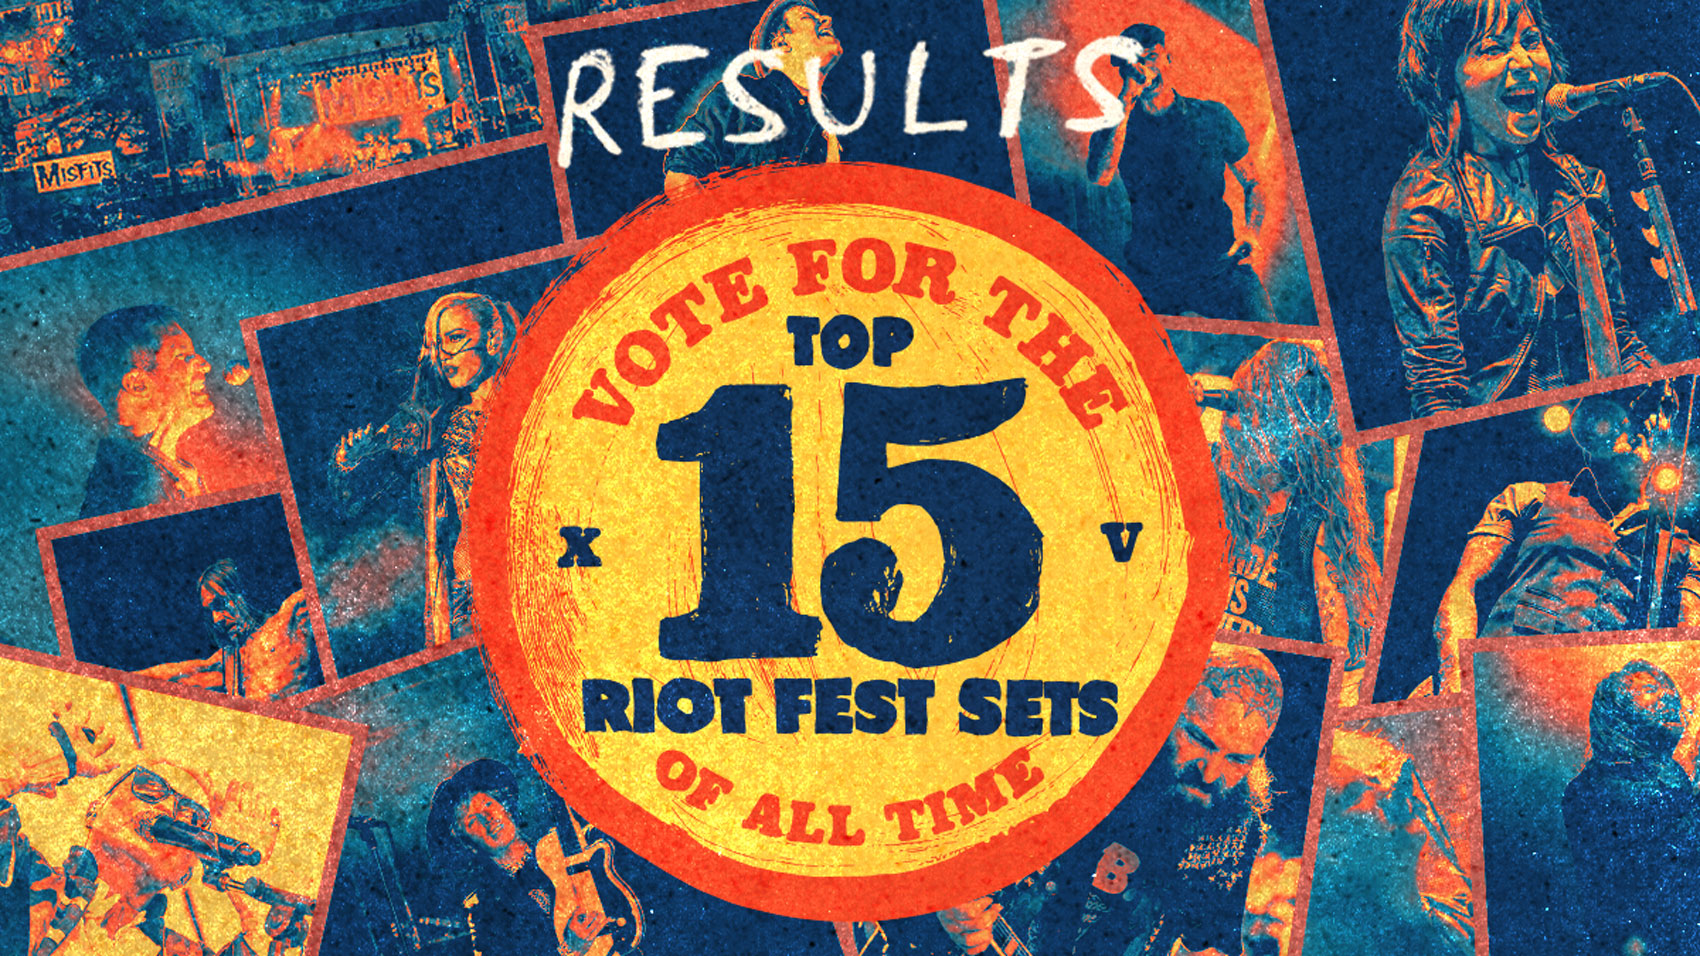 1faf3f4fd ICYMI: The Top 15 Riot Fest Acts Ever, as Voted by Fans